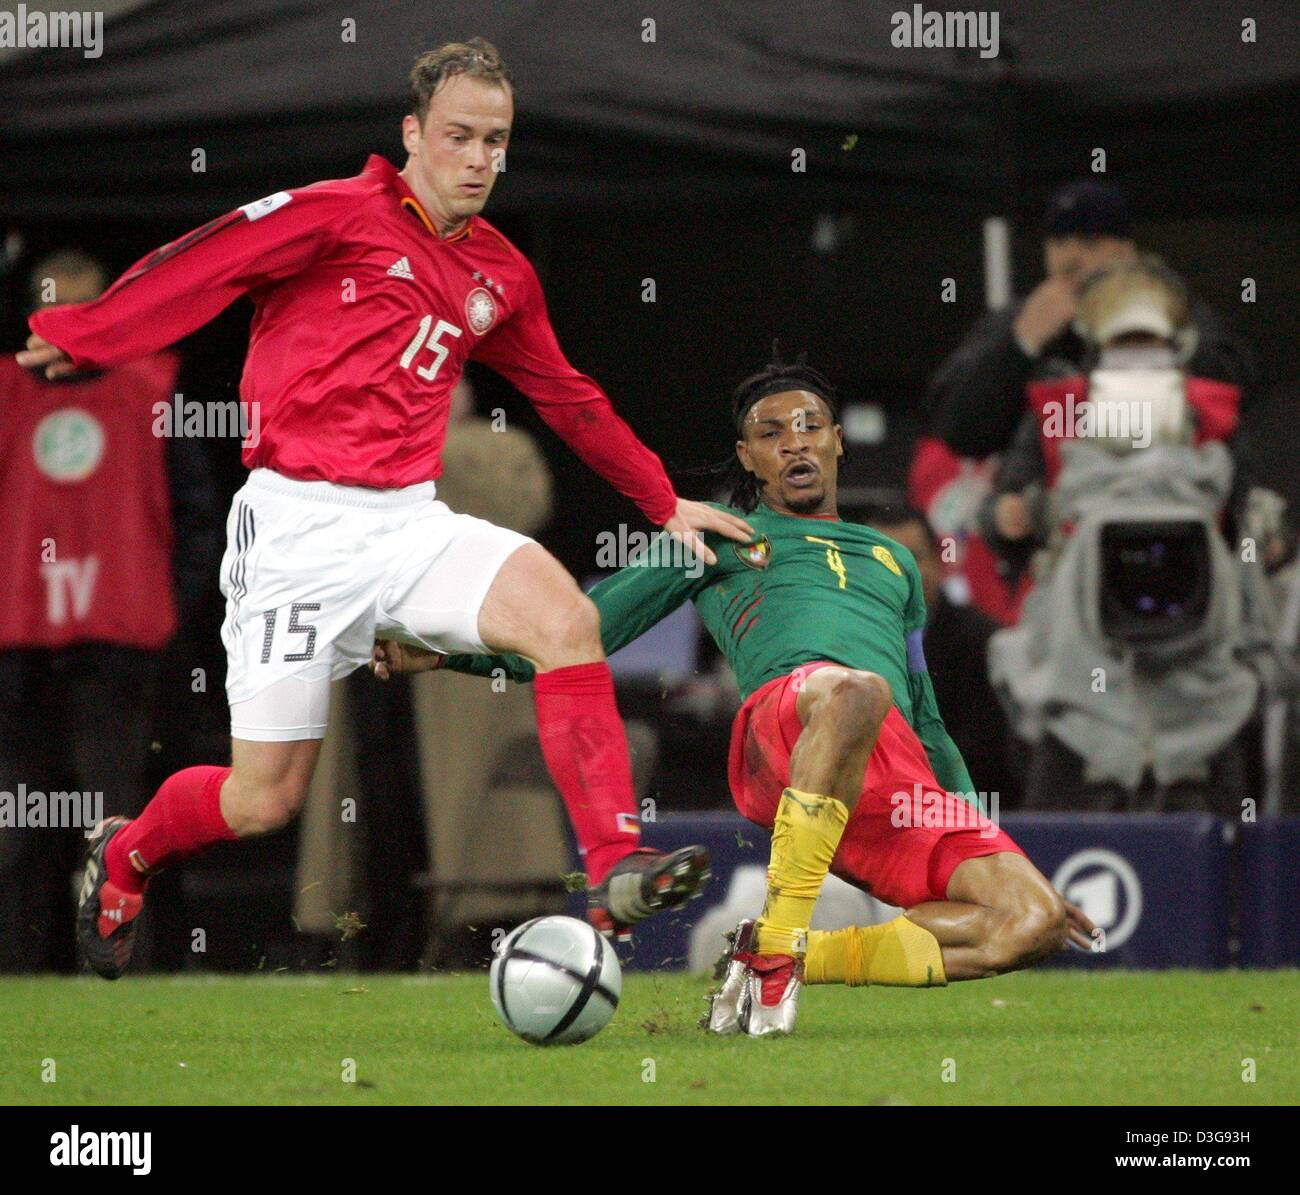 (dpa) - Germany's Fabian Ernst (L) in a duel with Cameroon's Rigobert Song during the match opposing Germany - Stock Image